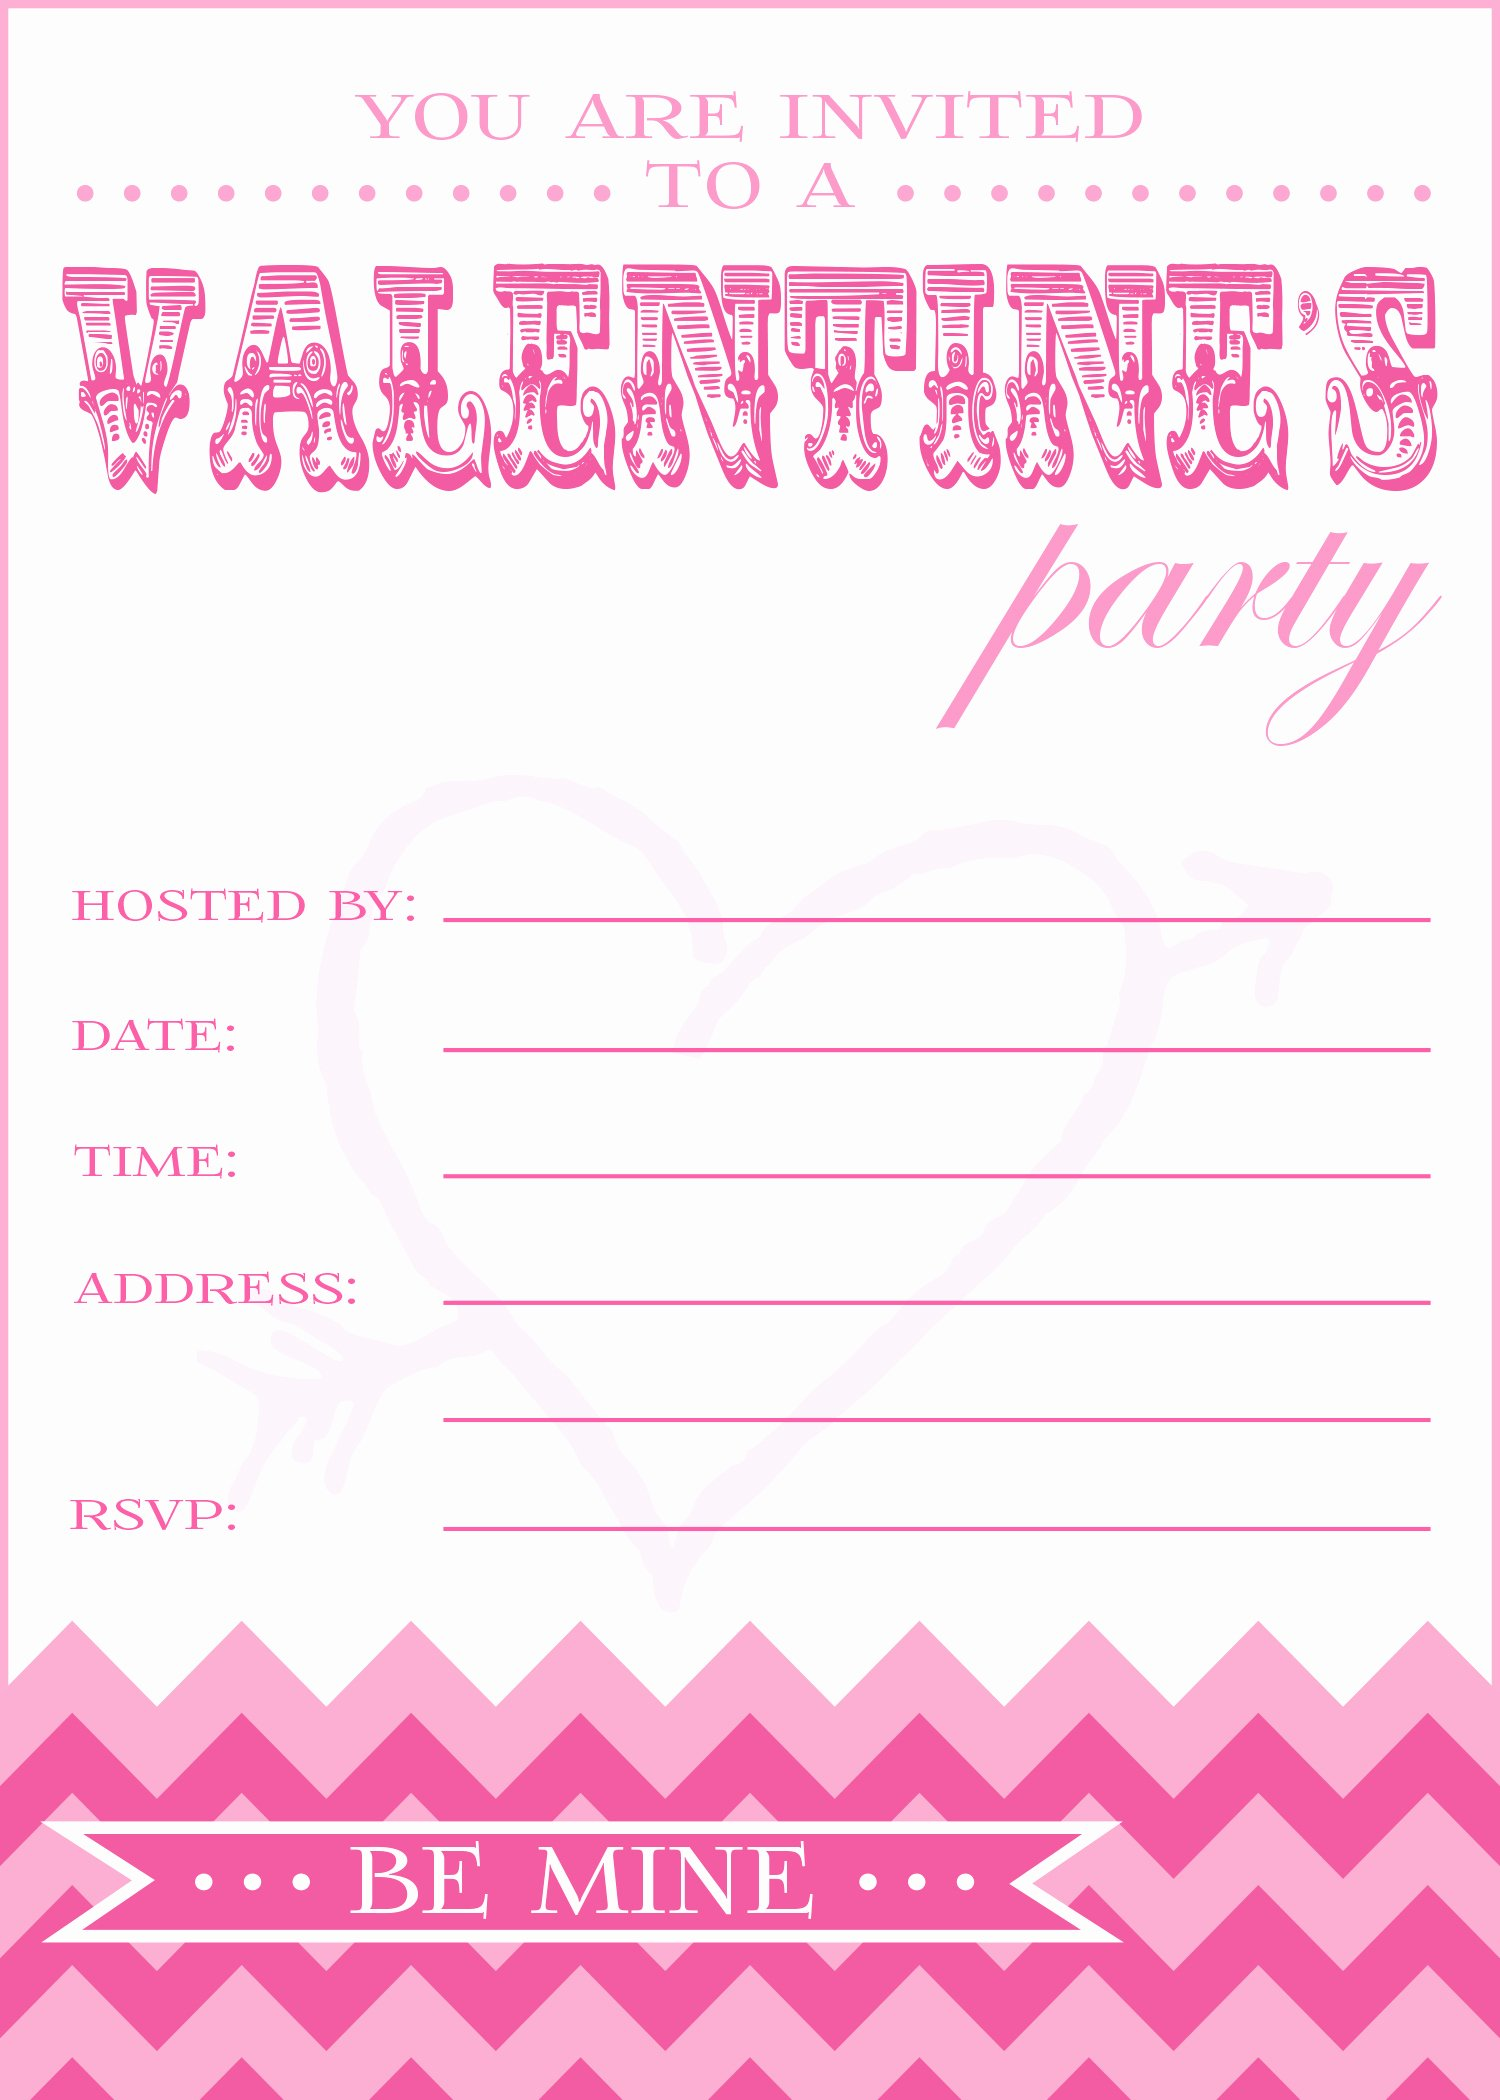 Printable Invitations for Free Awesome Free Valentine S Day Party Printables From Pick Print